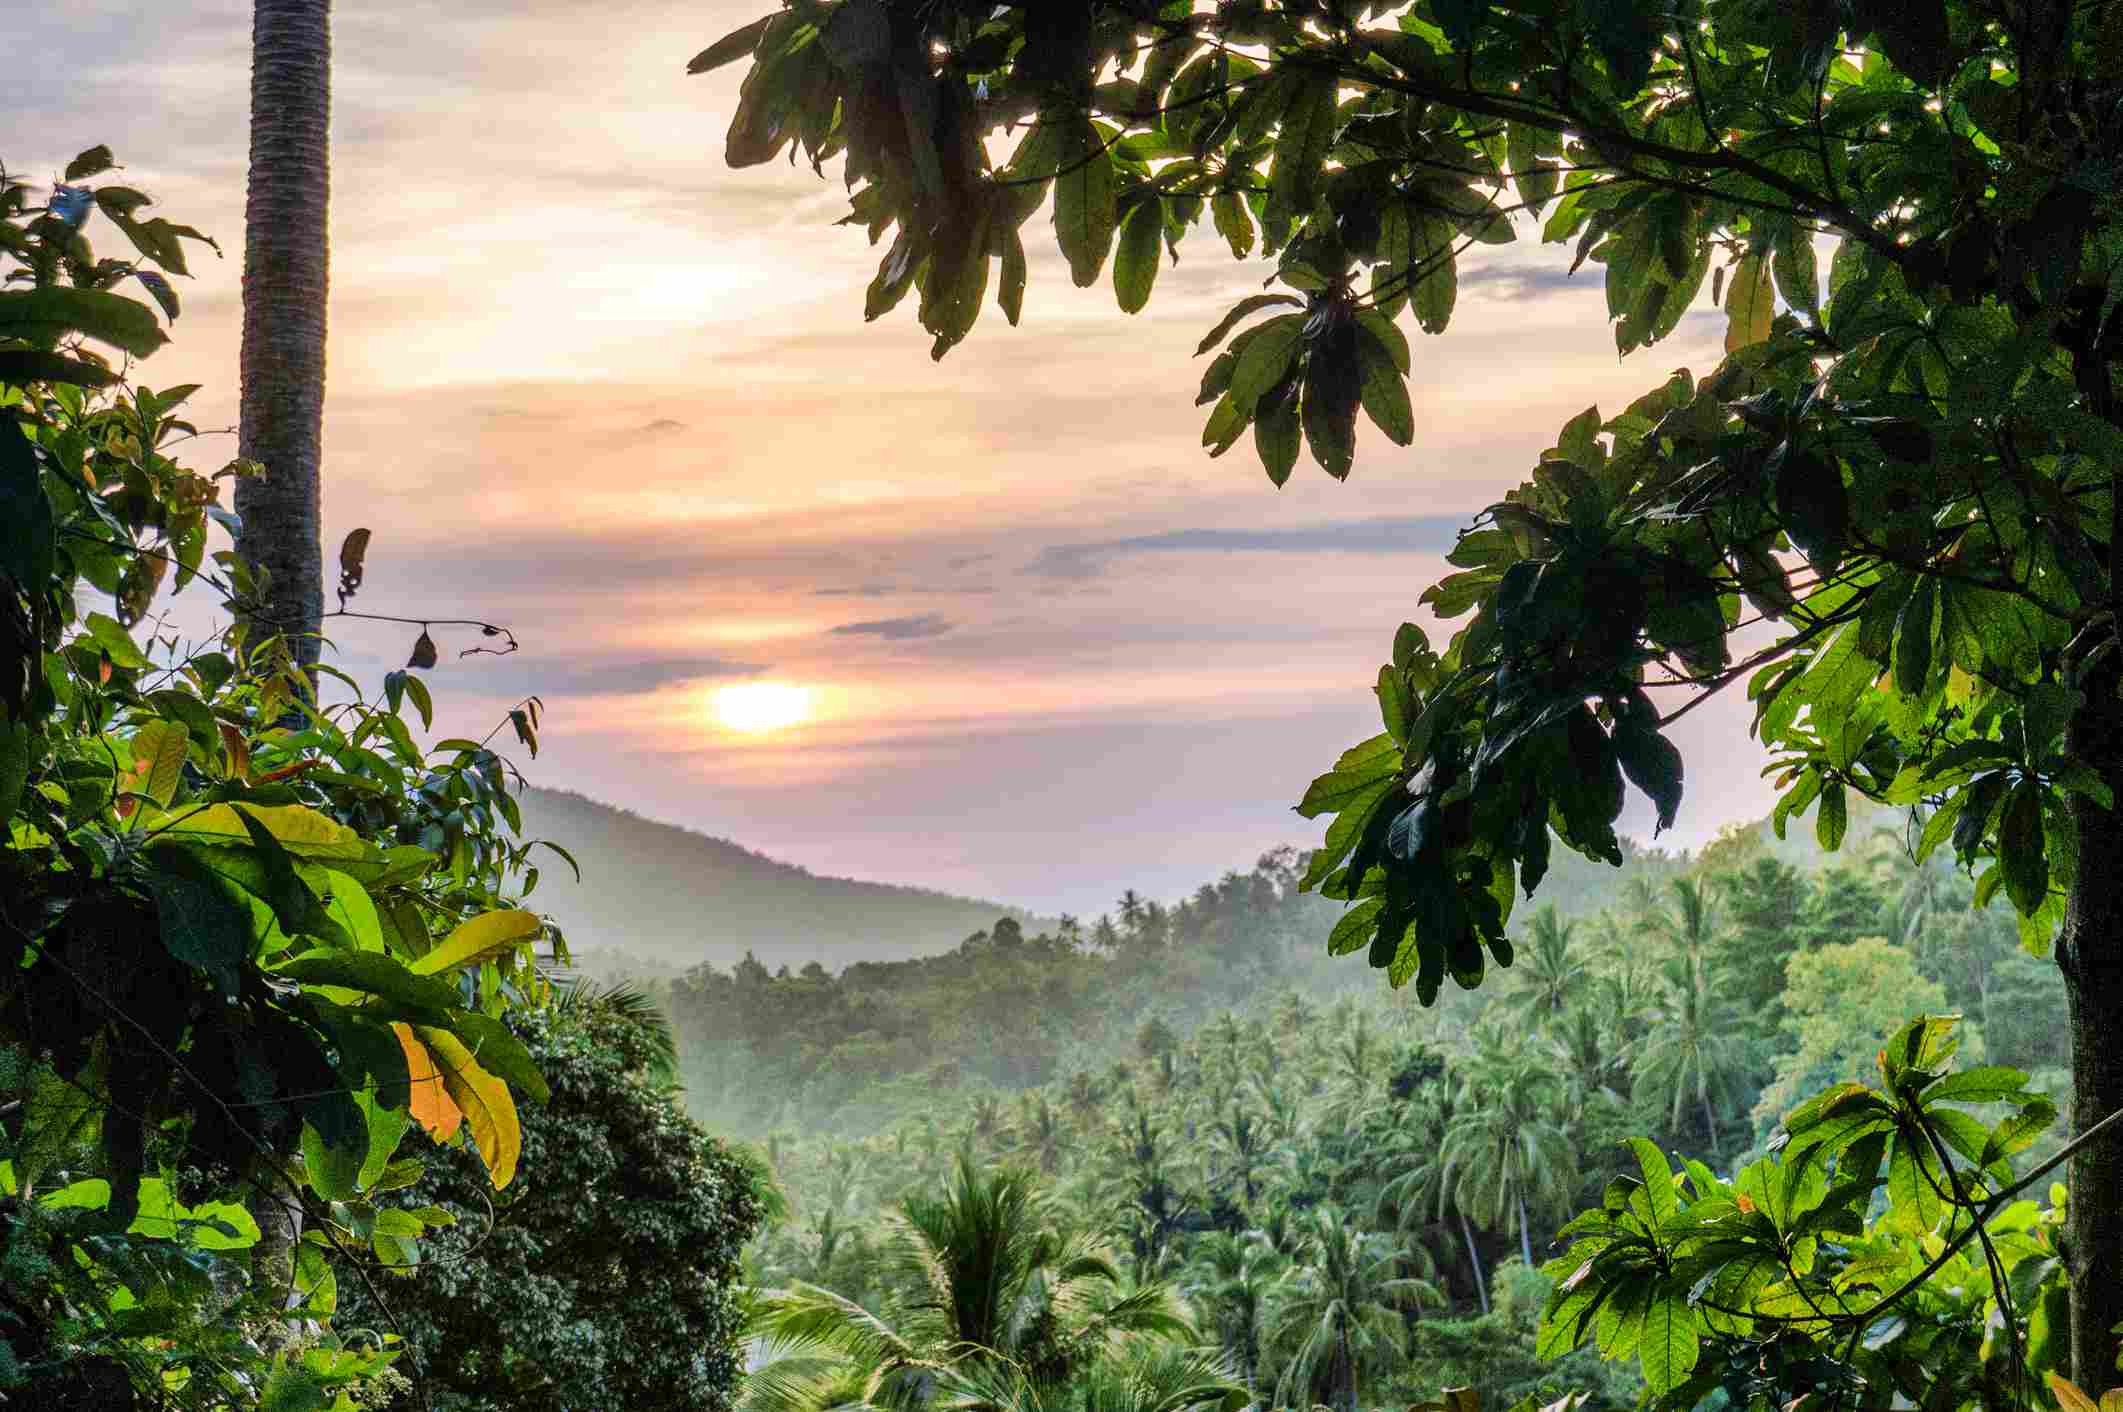 Looking out over the lush treetops in Thailand